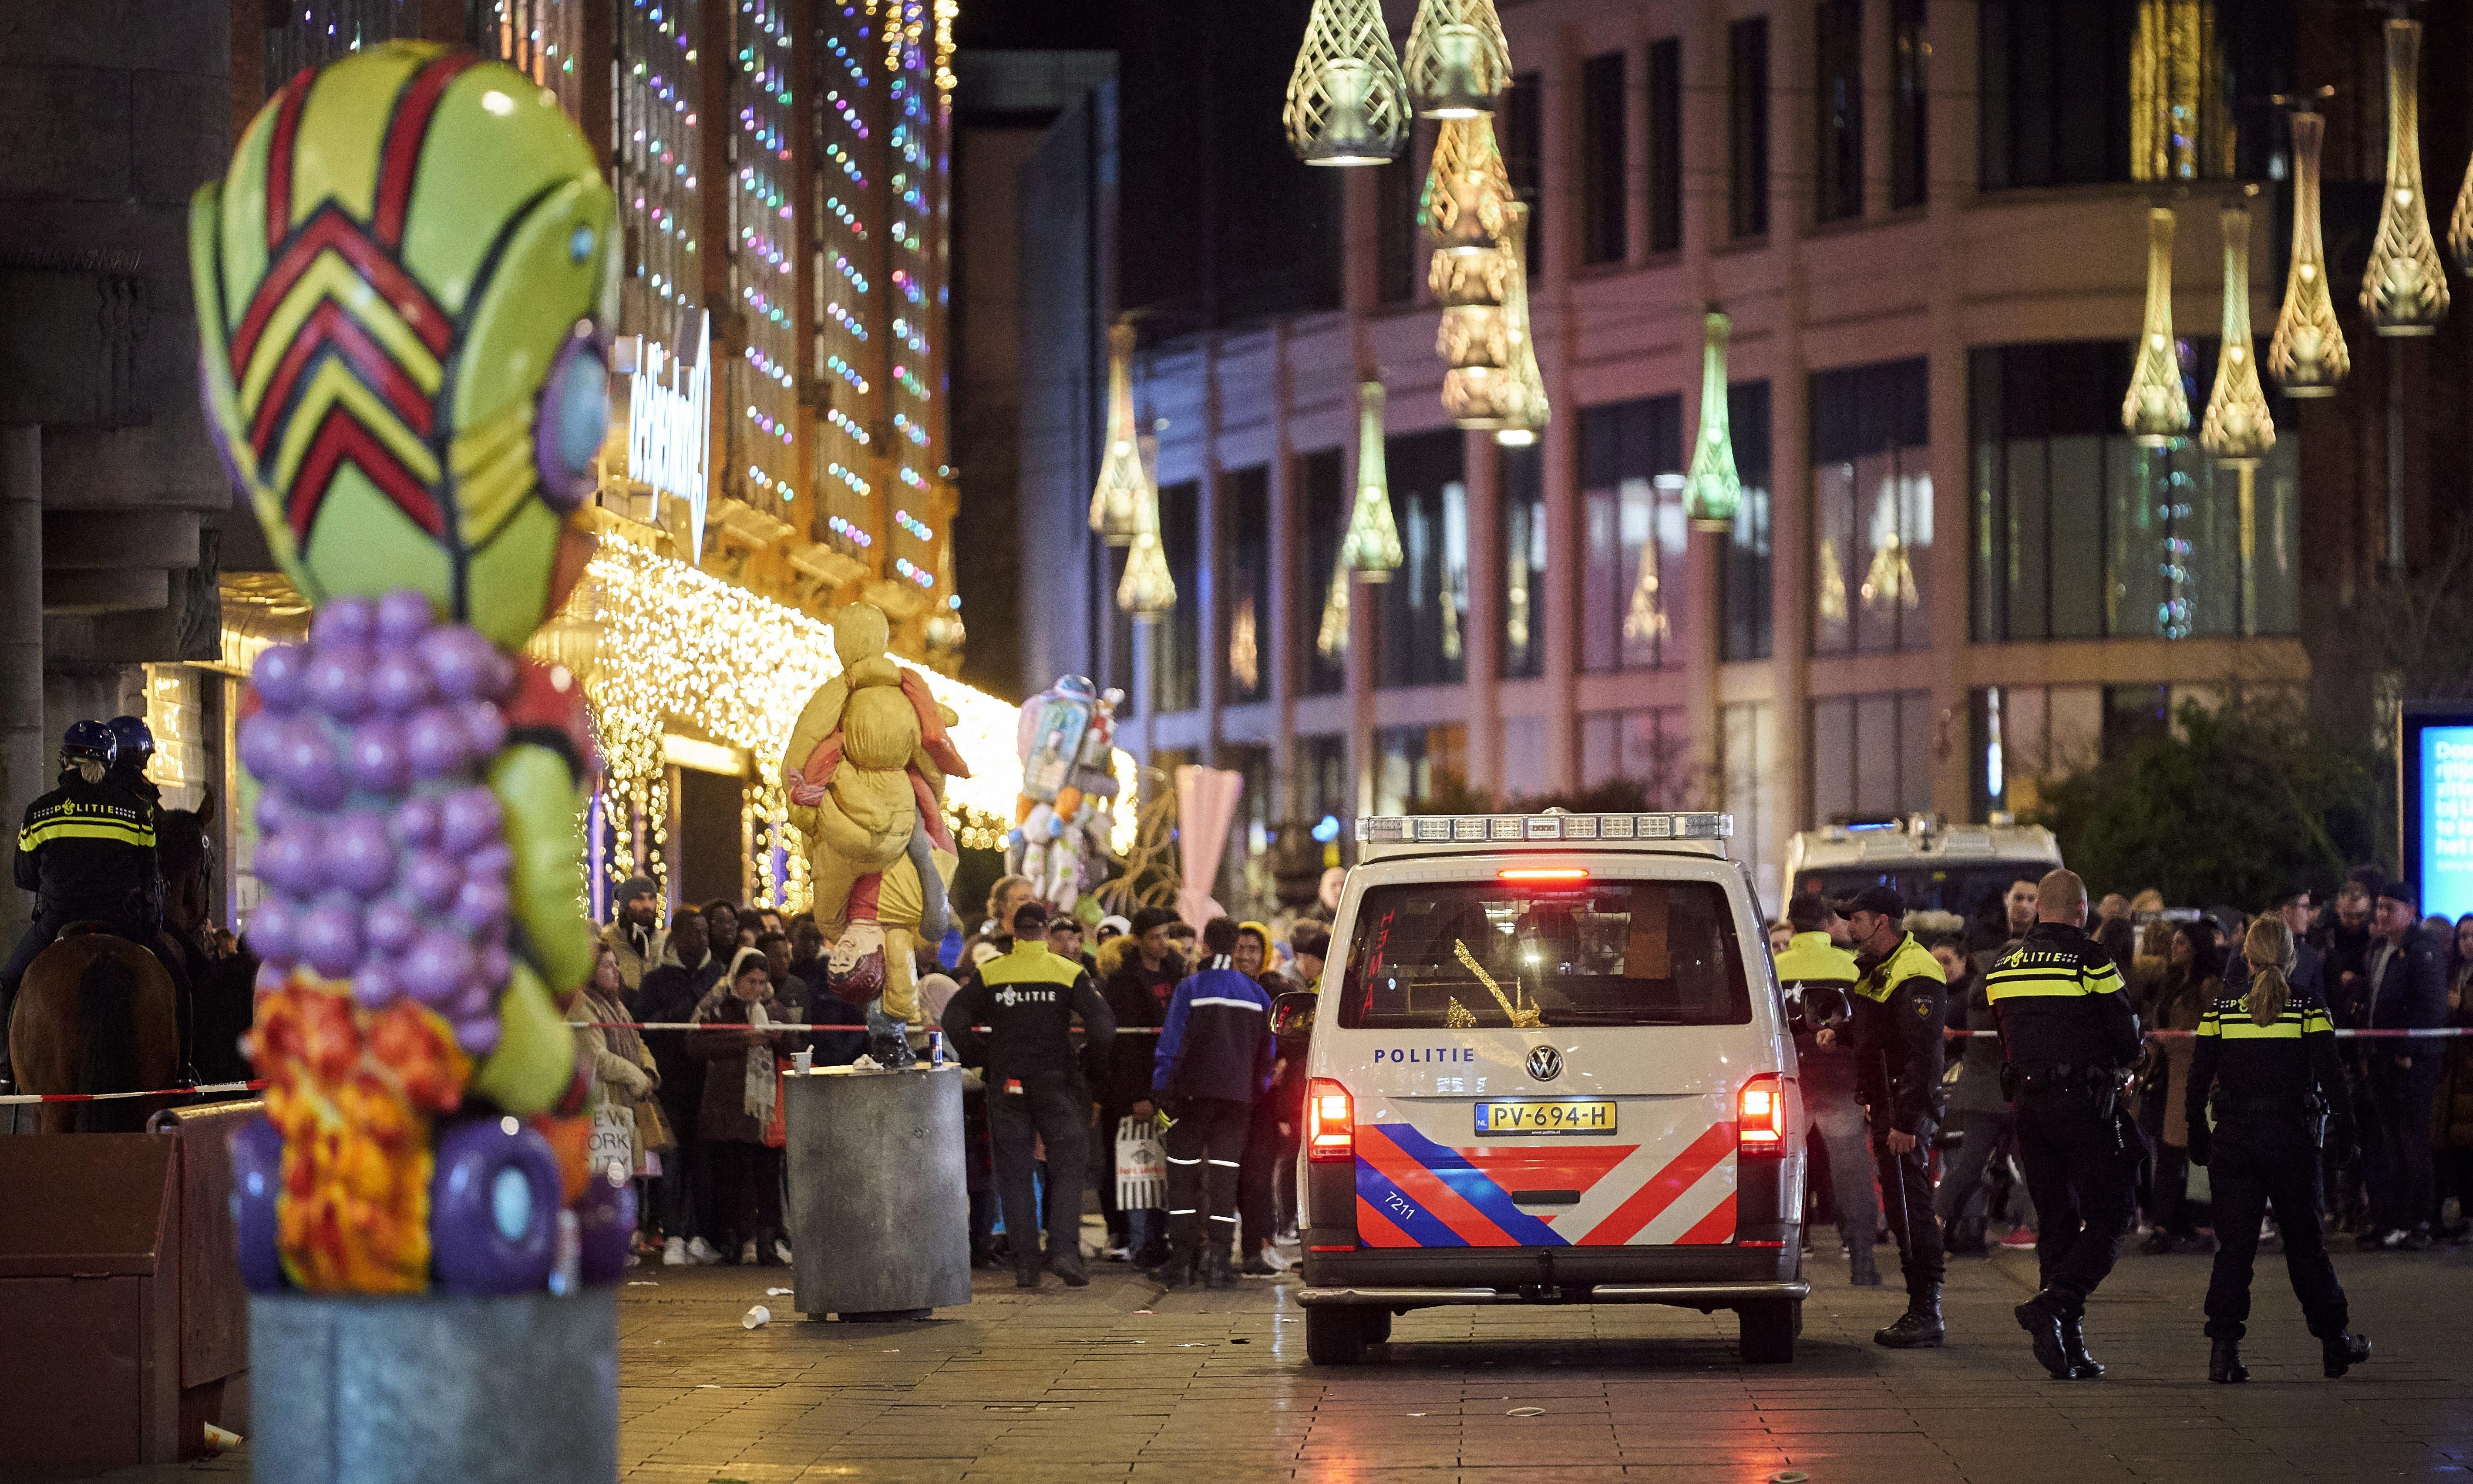 Three youths wounded in stabbing incident in The Hague